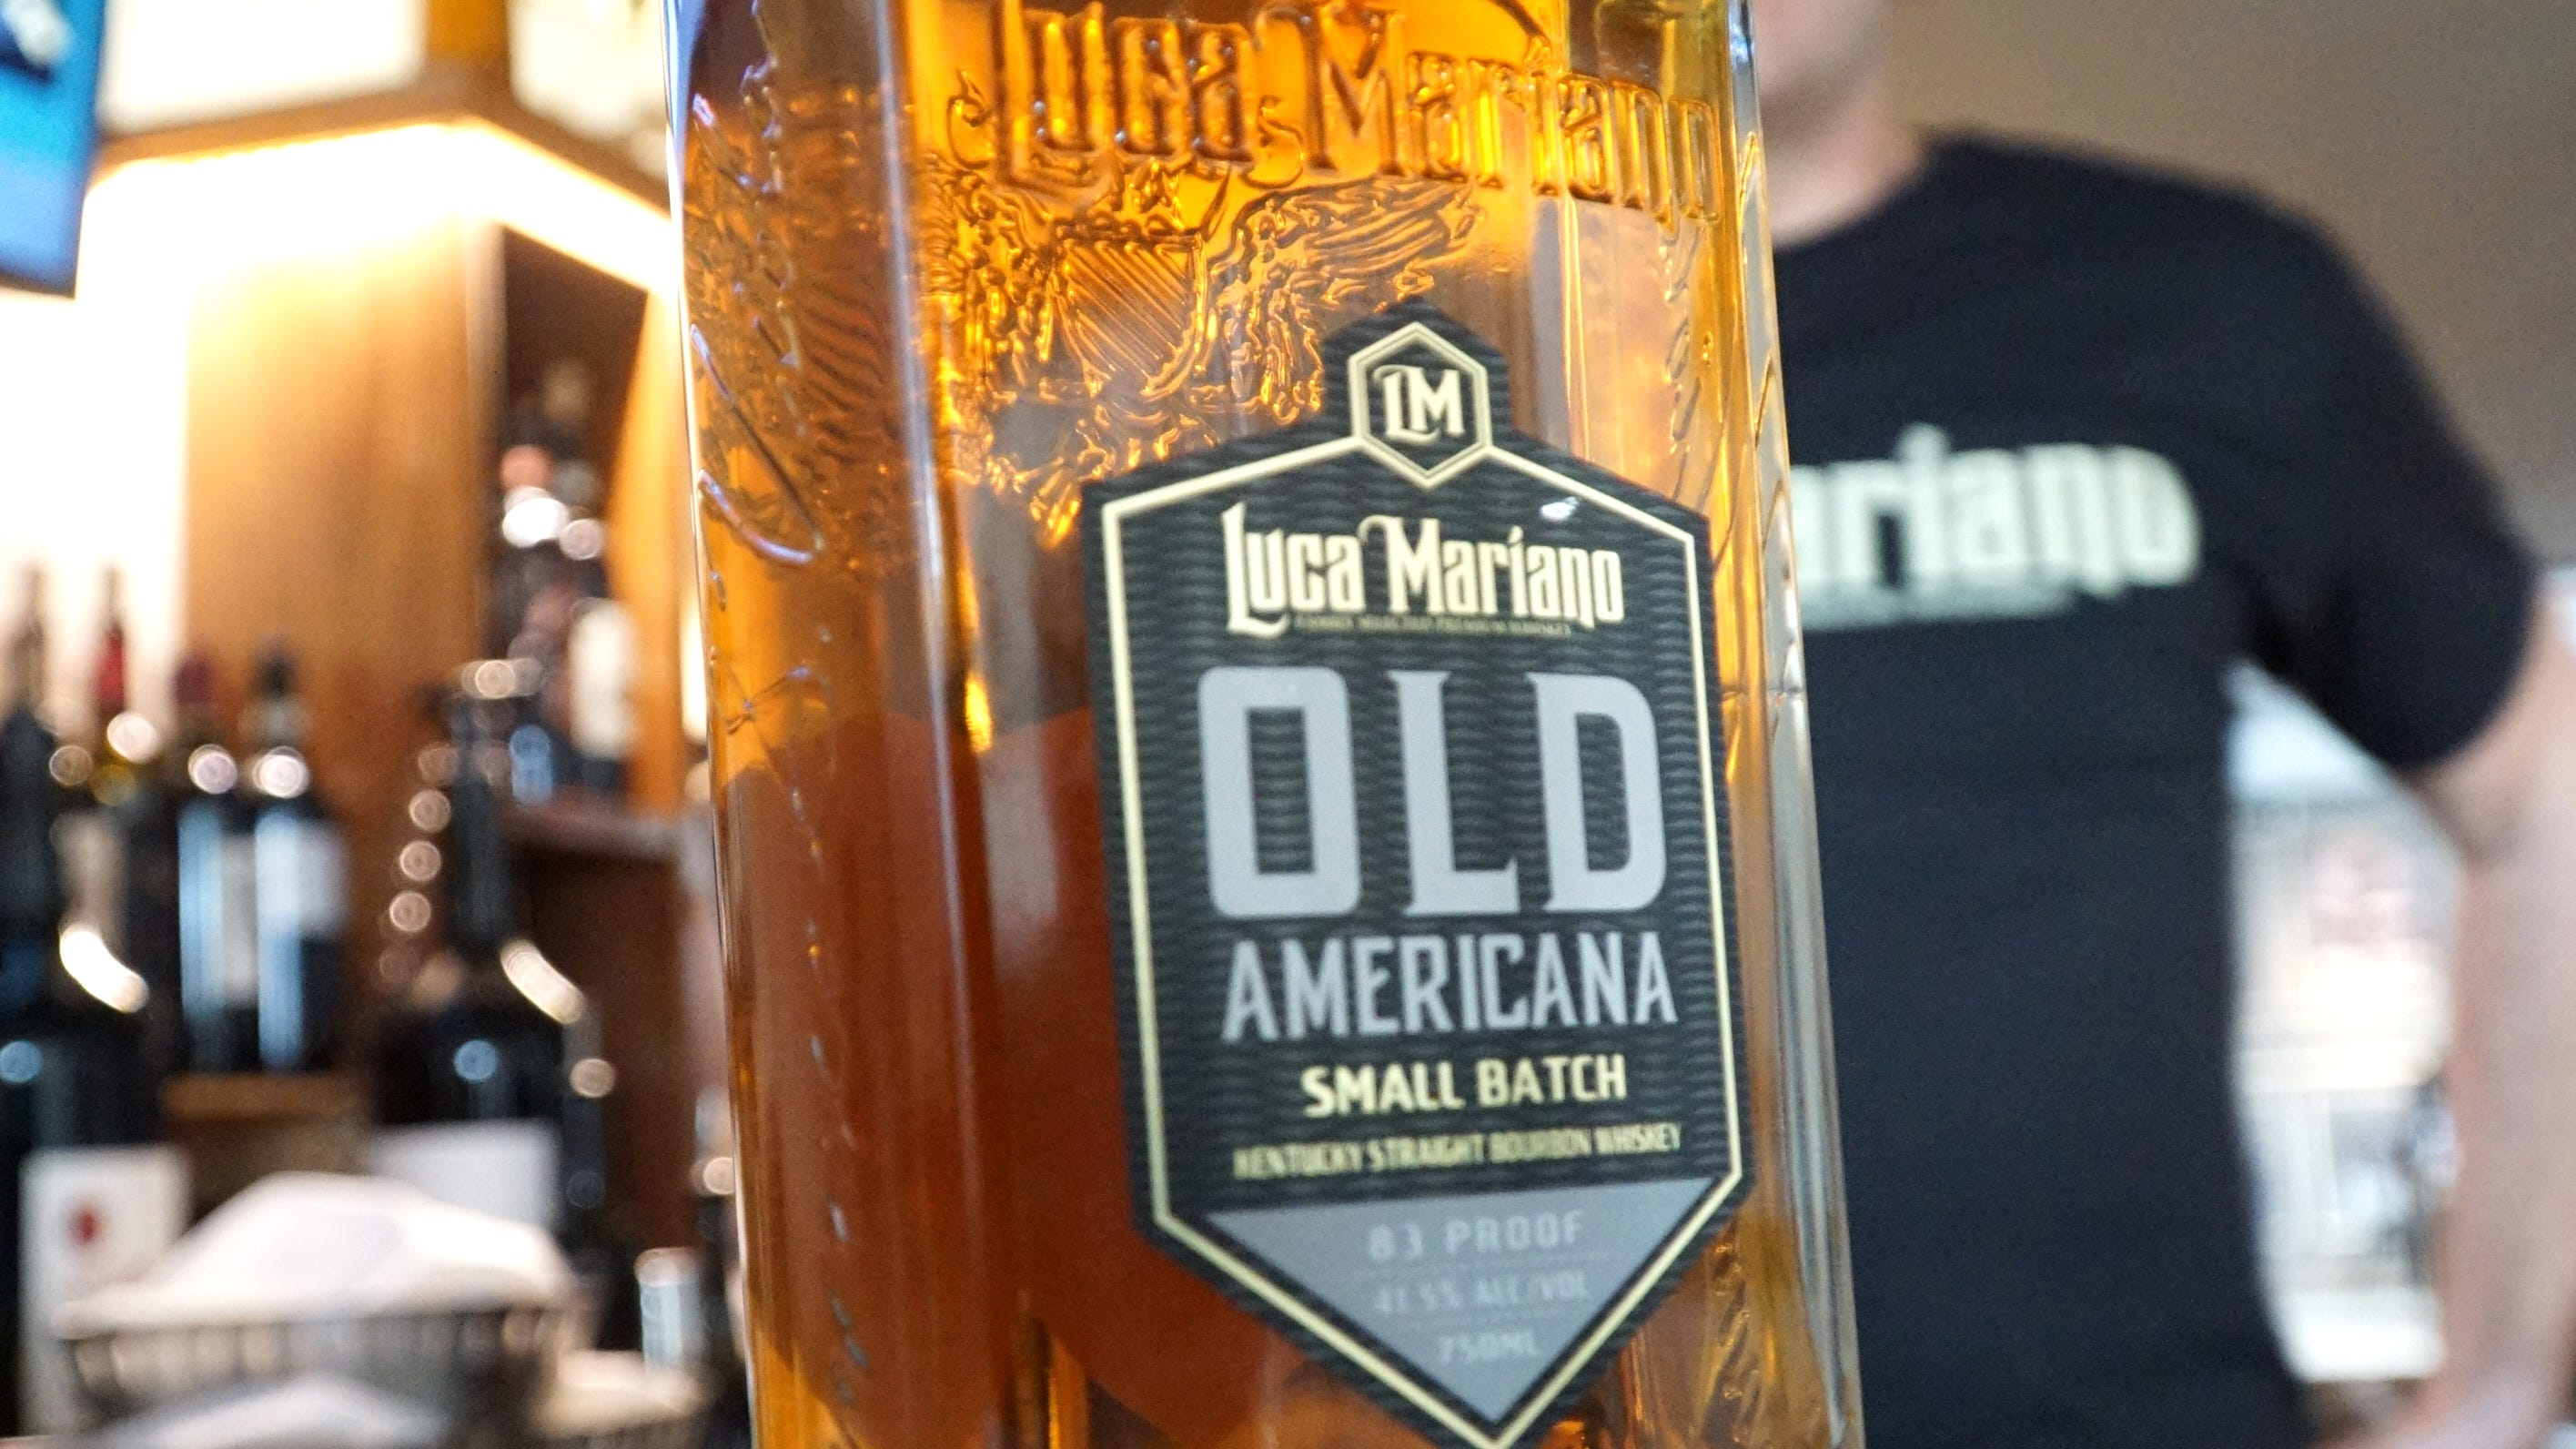 Michigan man introduces Luca Mariano bourbon to metro Detroit market